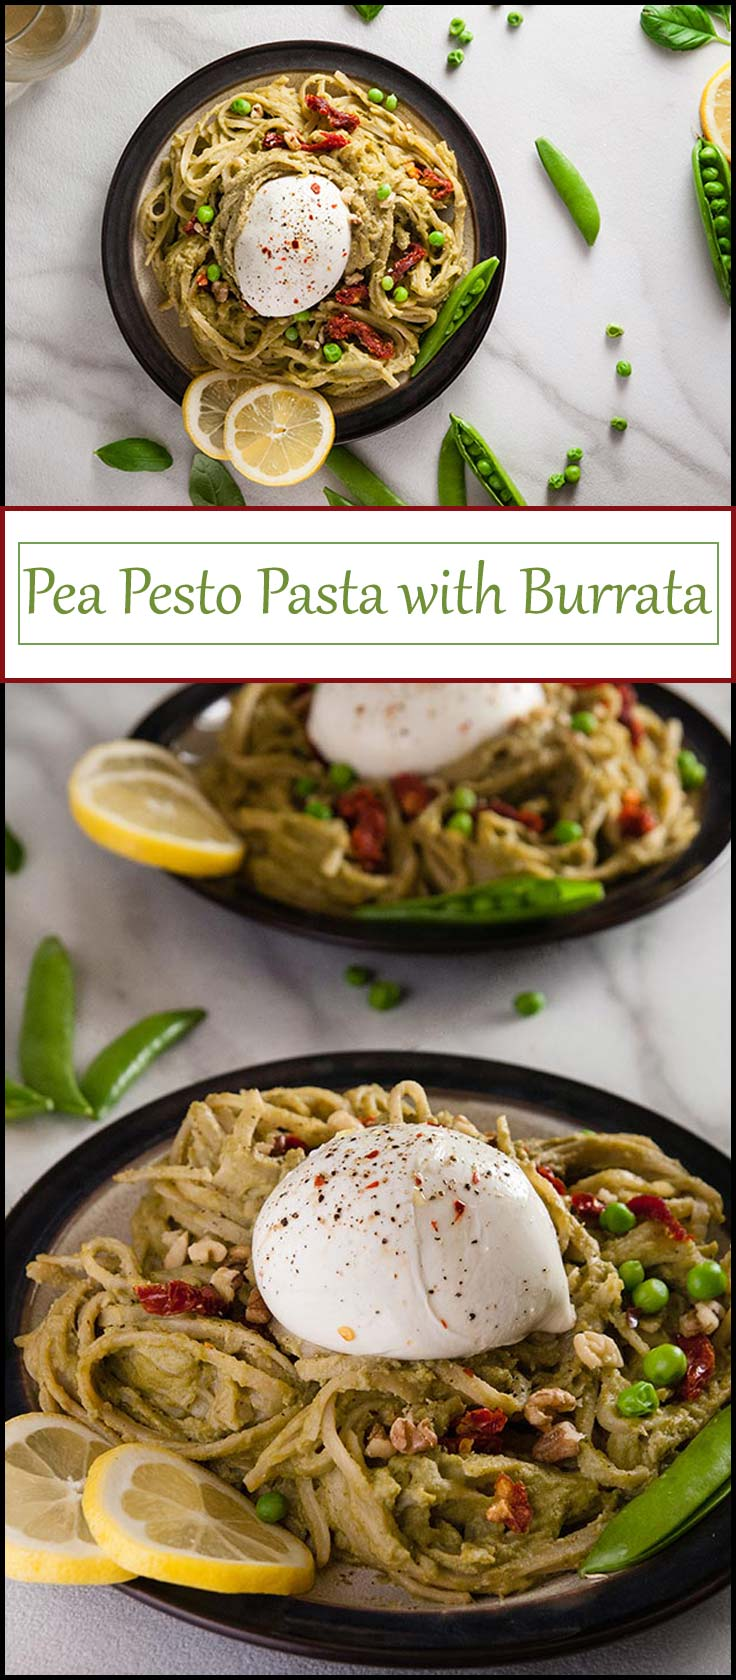 Pea Pesto Pasta with burrata is ready in 20 minutes and makes a perfect spring dinner from www.seasonedsprinkles.com